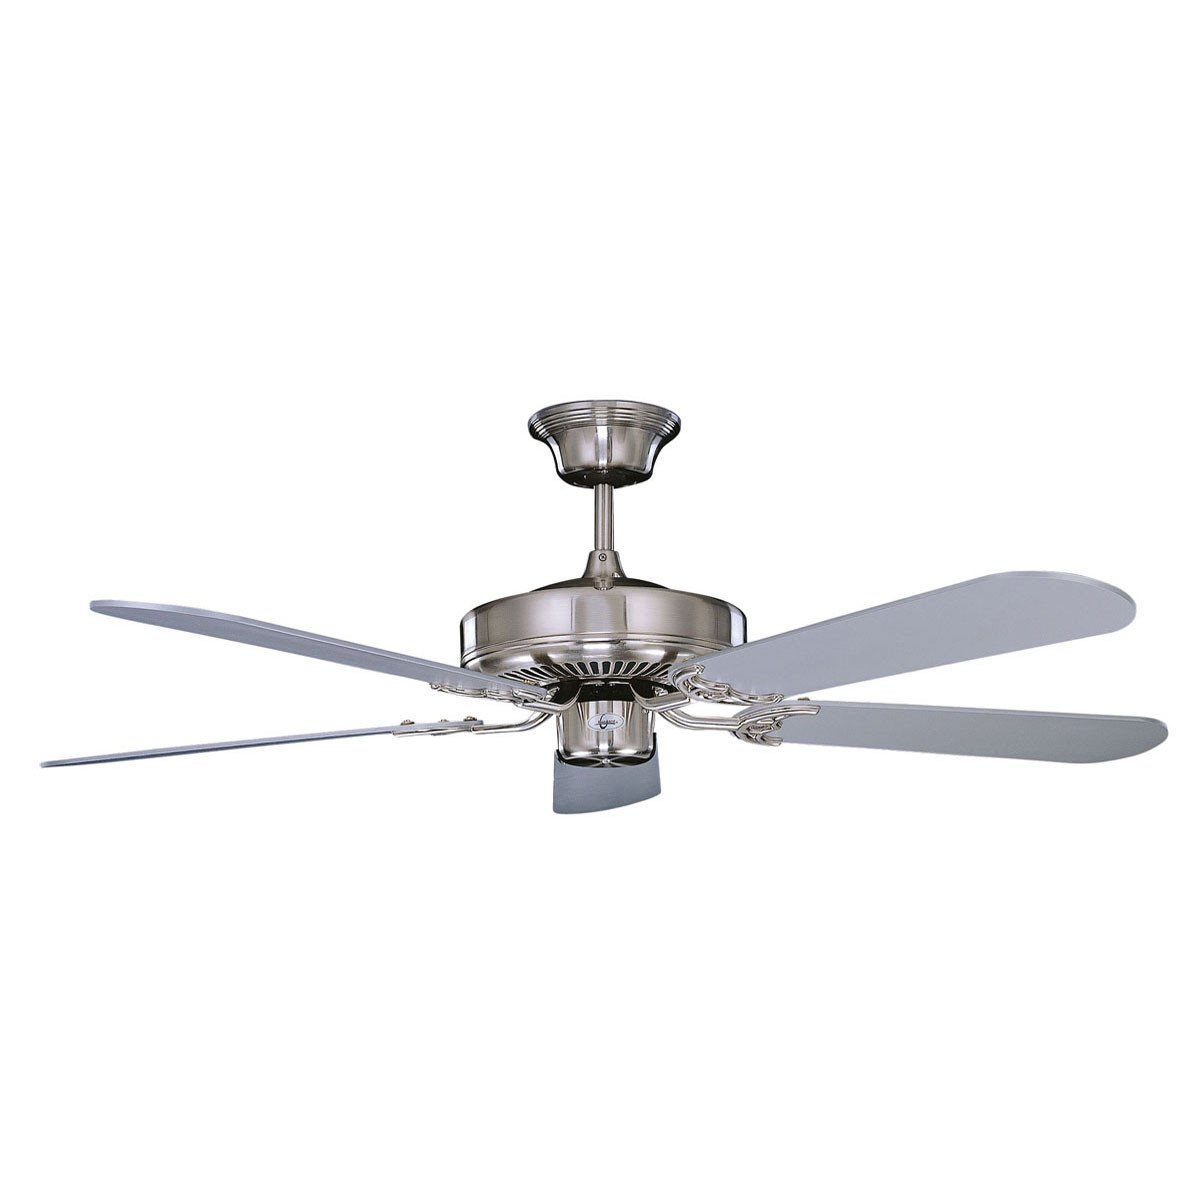 "Concord Fans Decorama Small Modern 52"" Stainless Steel Ceiling Fan"